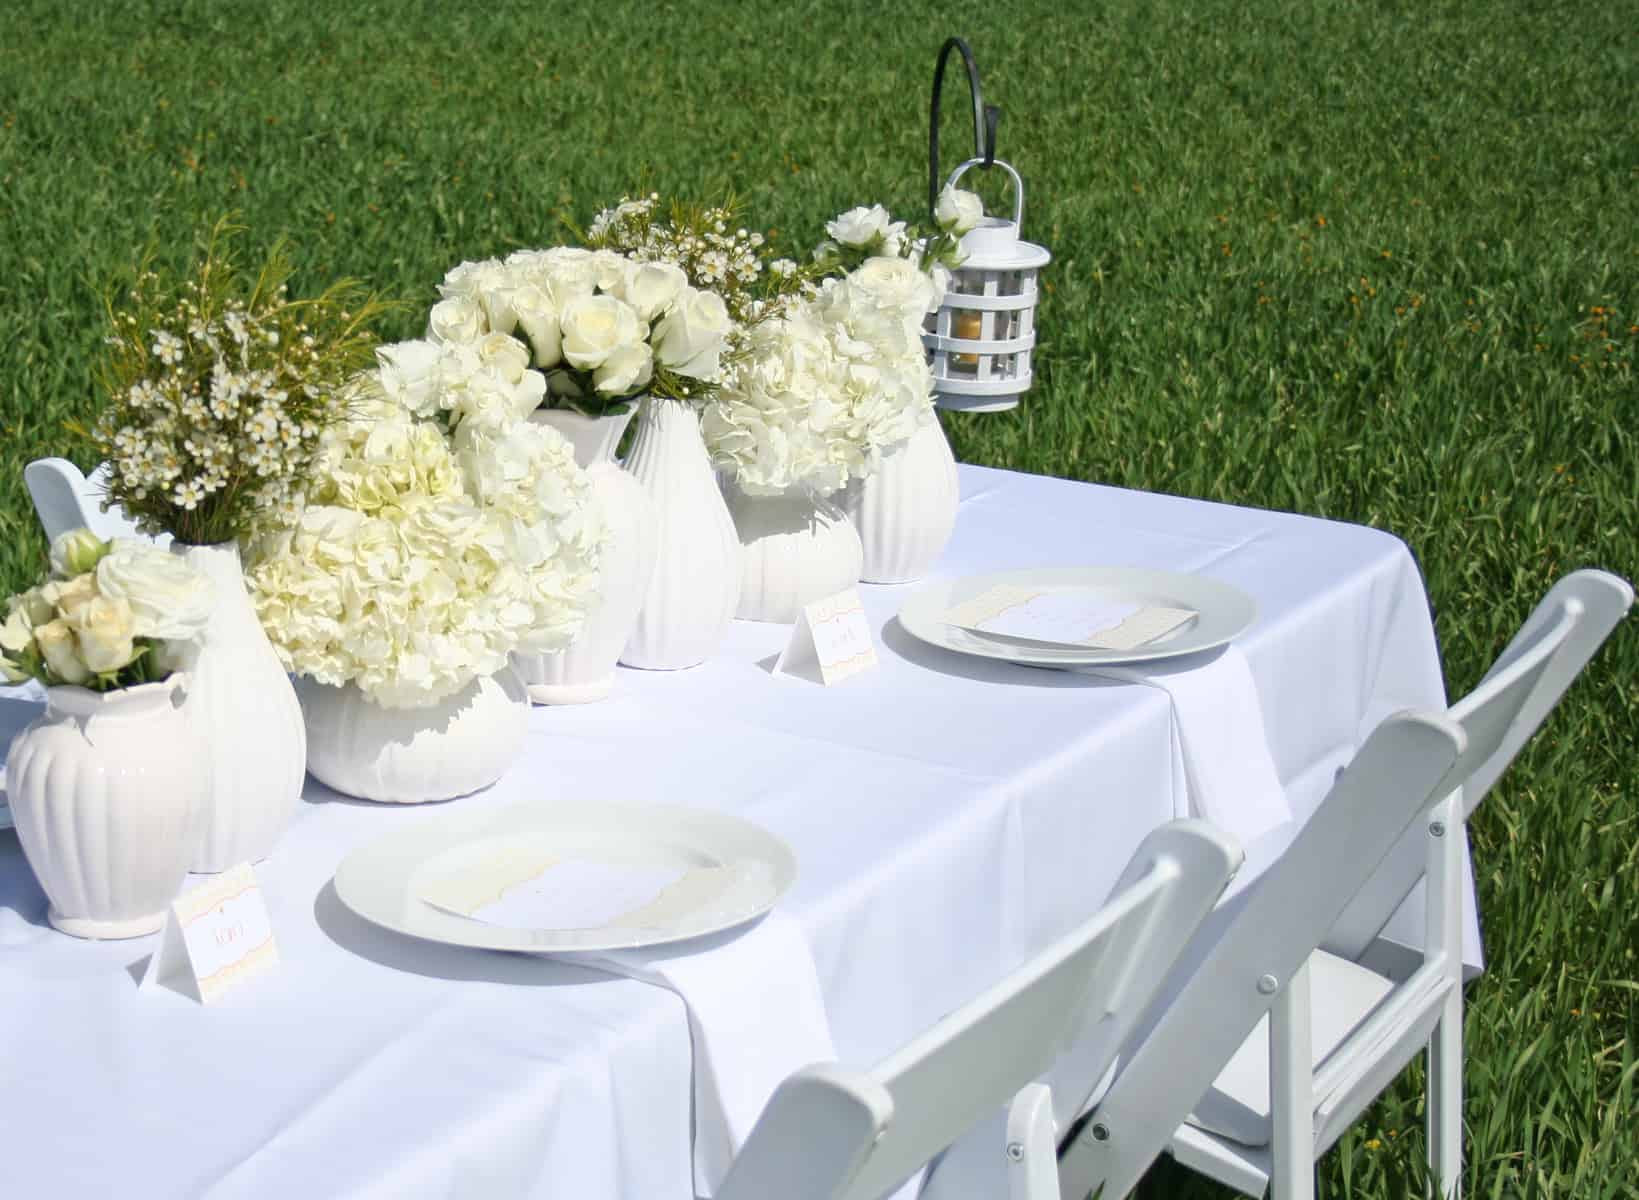 Centerpiece Ideas Archives Page 2 Of 4 Thoughtfully Simple